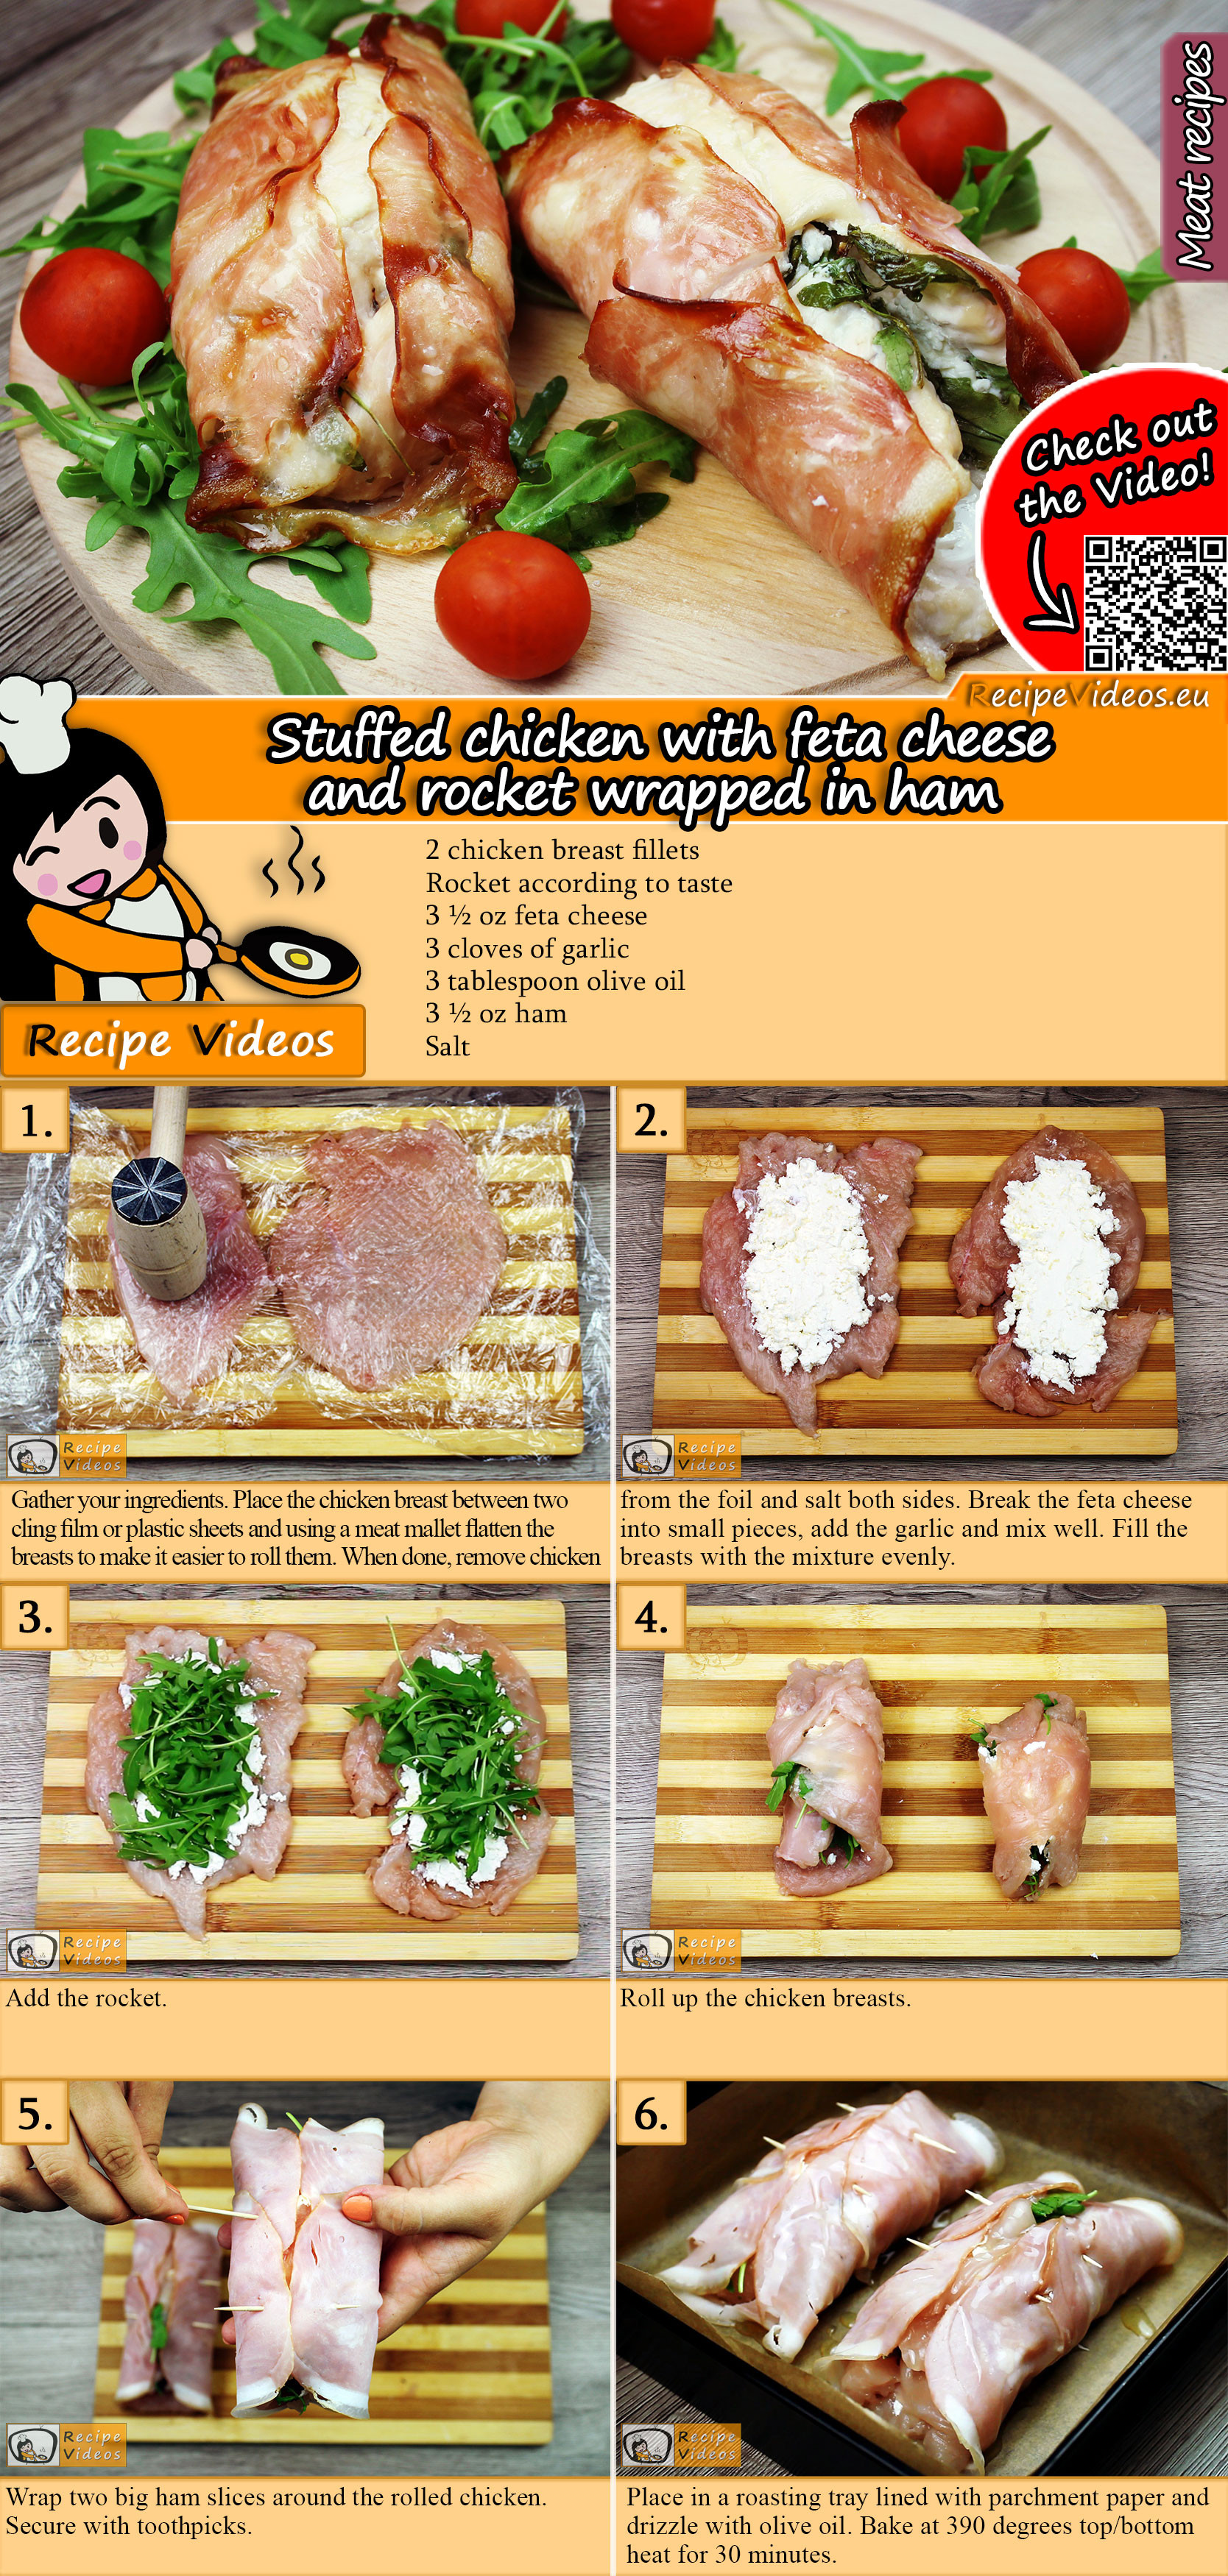 Stuffed chicken with feta cheese and rocket wrapped in ham recipe with video